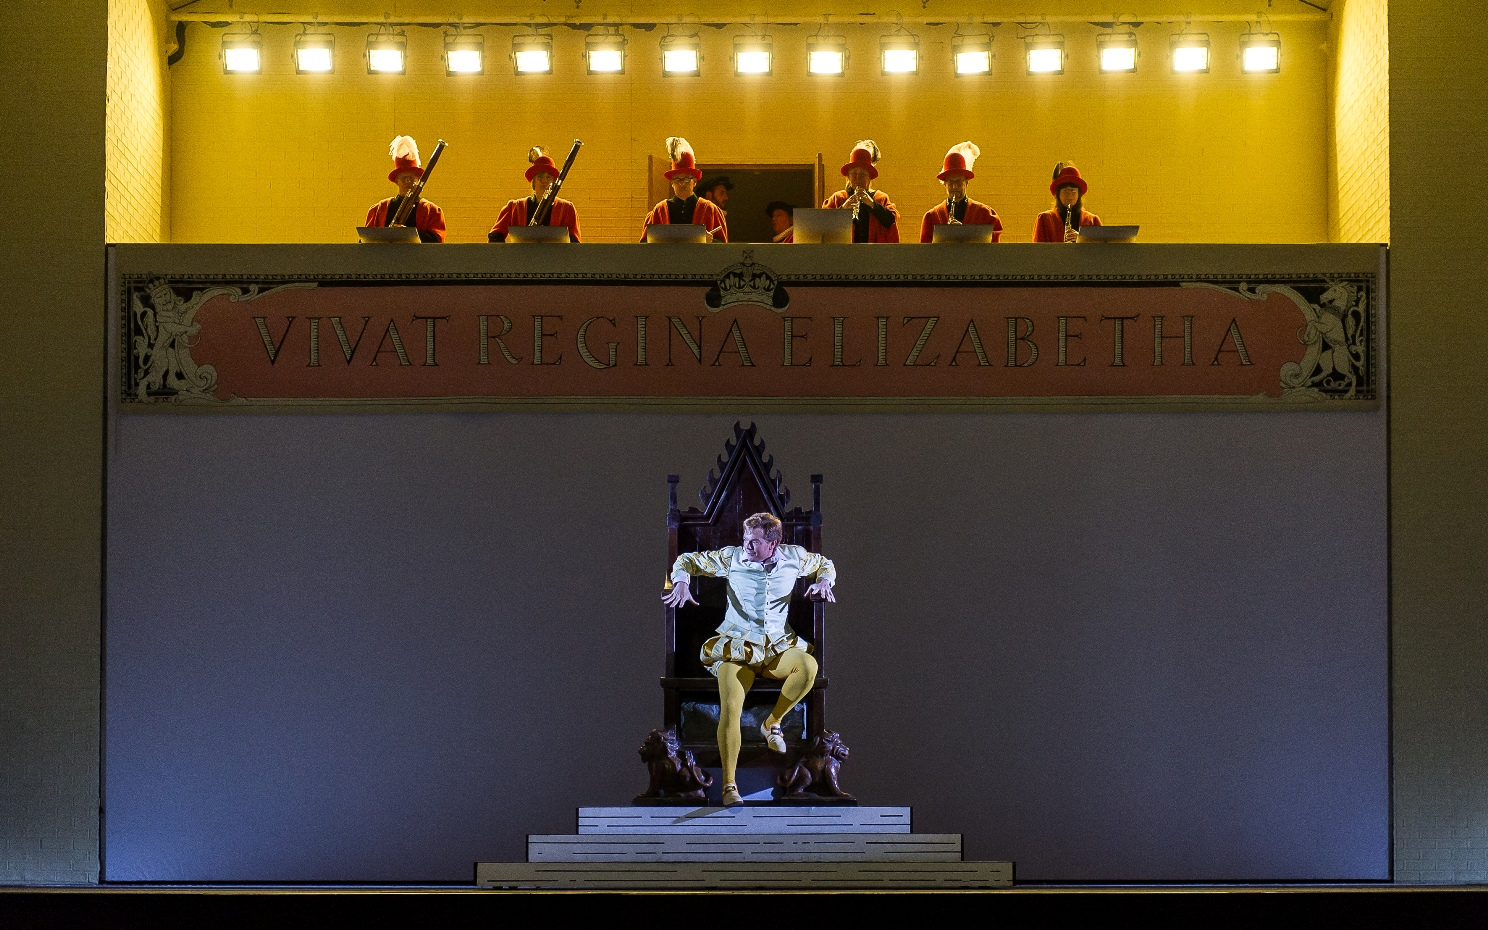 Toby Spence as Essex in the Royal Opera Gloriana